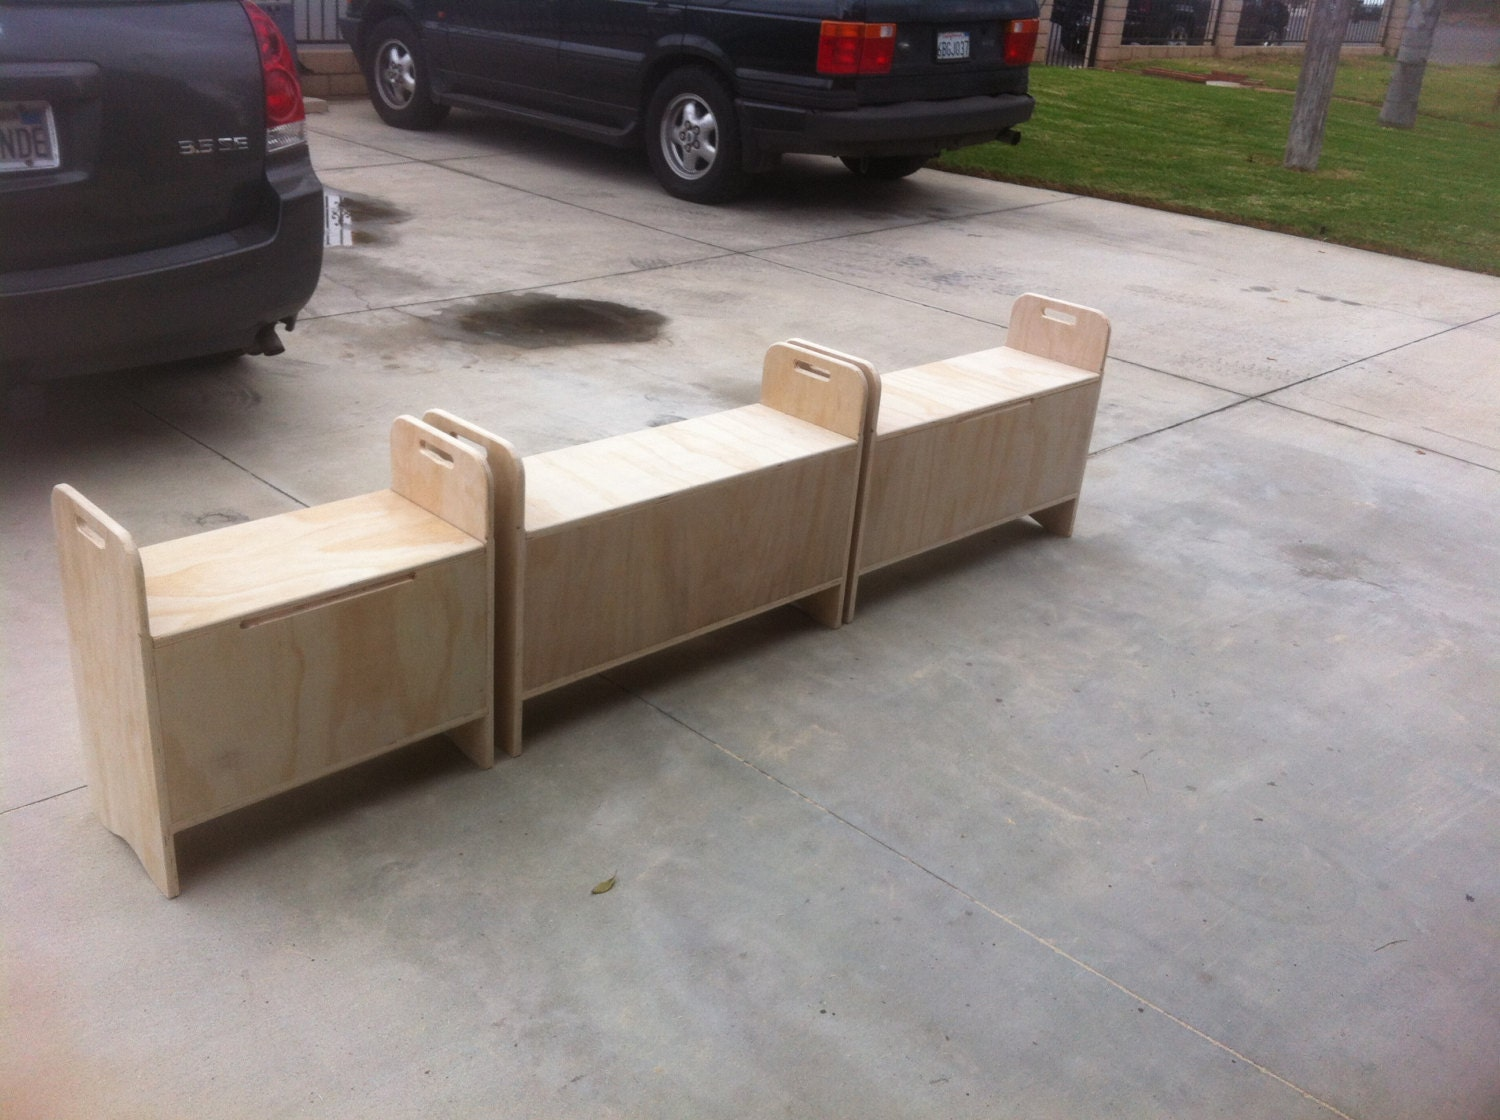 12 Inch Deep Bench 28 Images Plywood Storage Bench 12